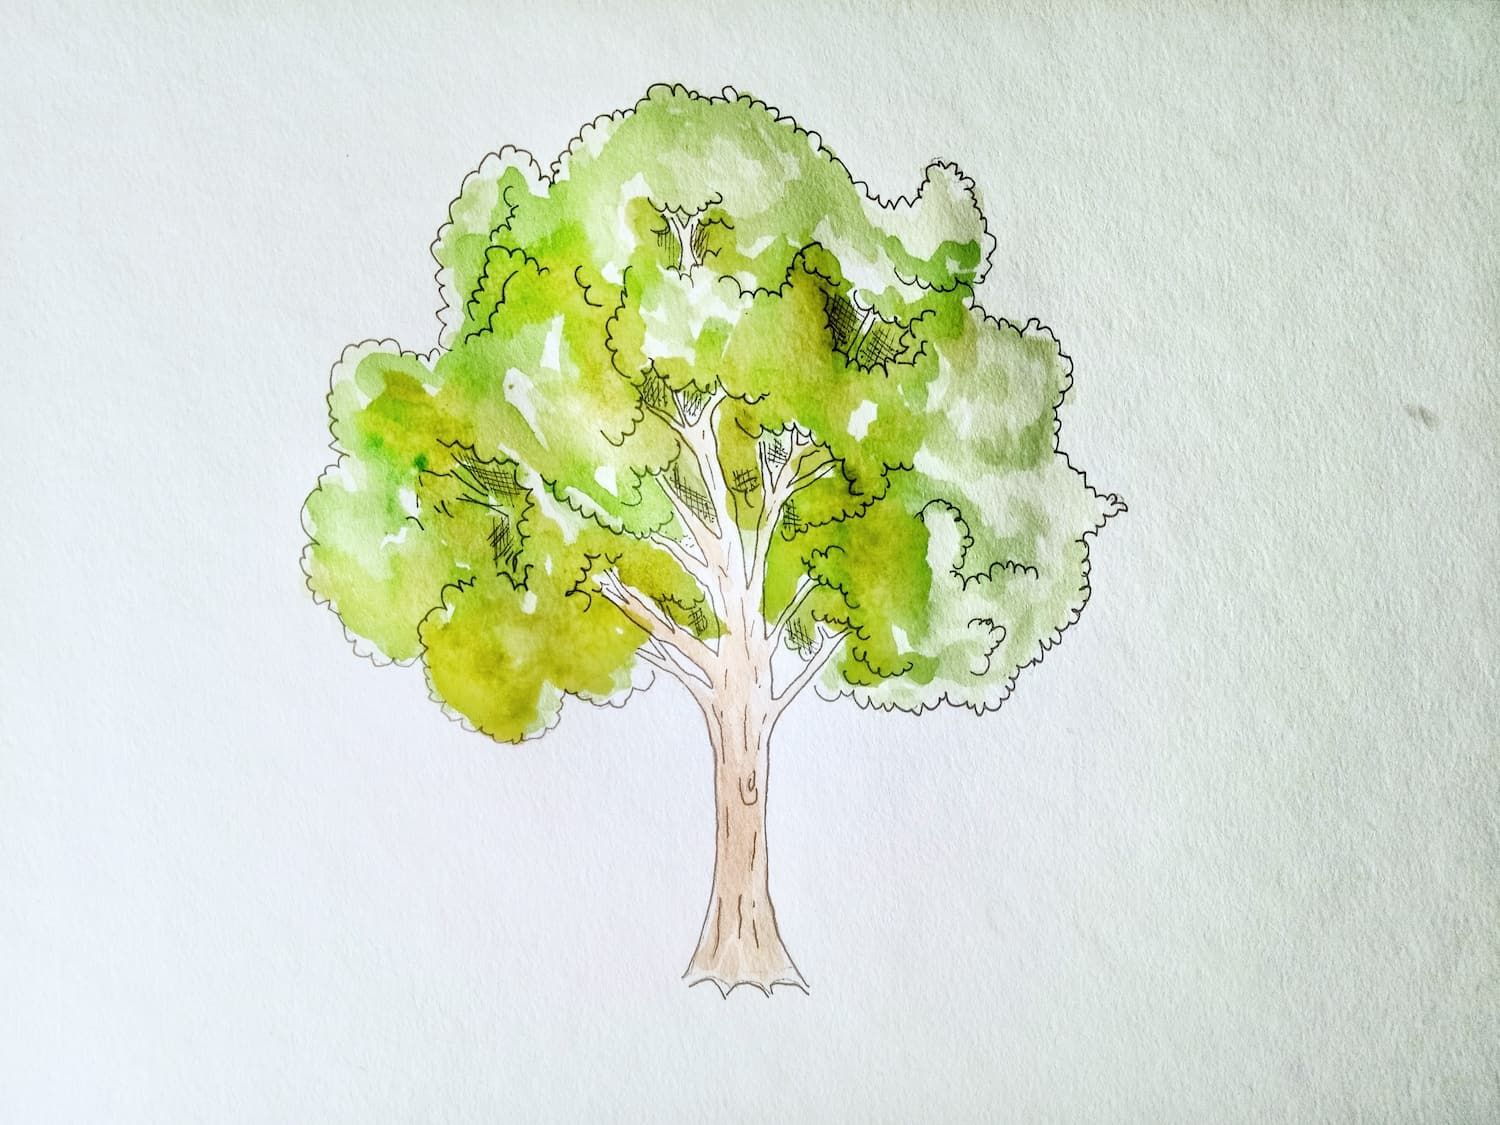 How to draw a tree 6